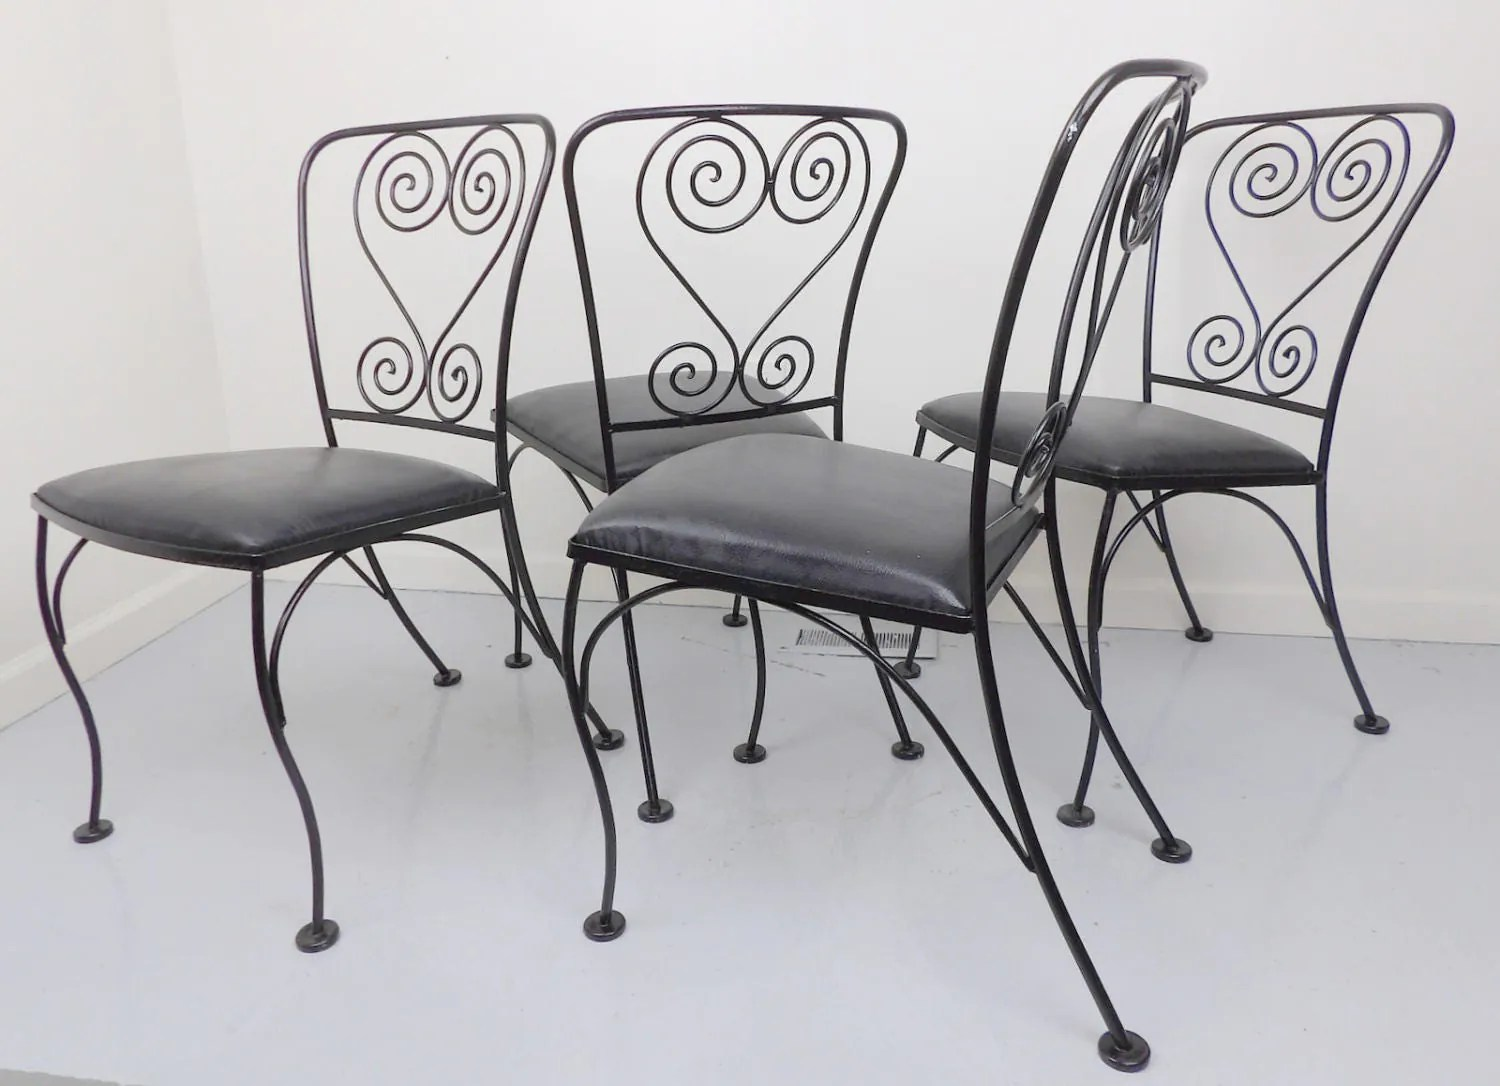 Black Metal Patio Chairs Wrought Iron Chairs 4 Patio Antique Chair Set Metal Black